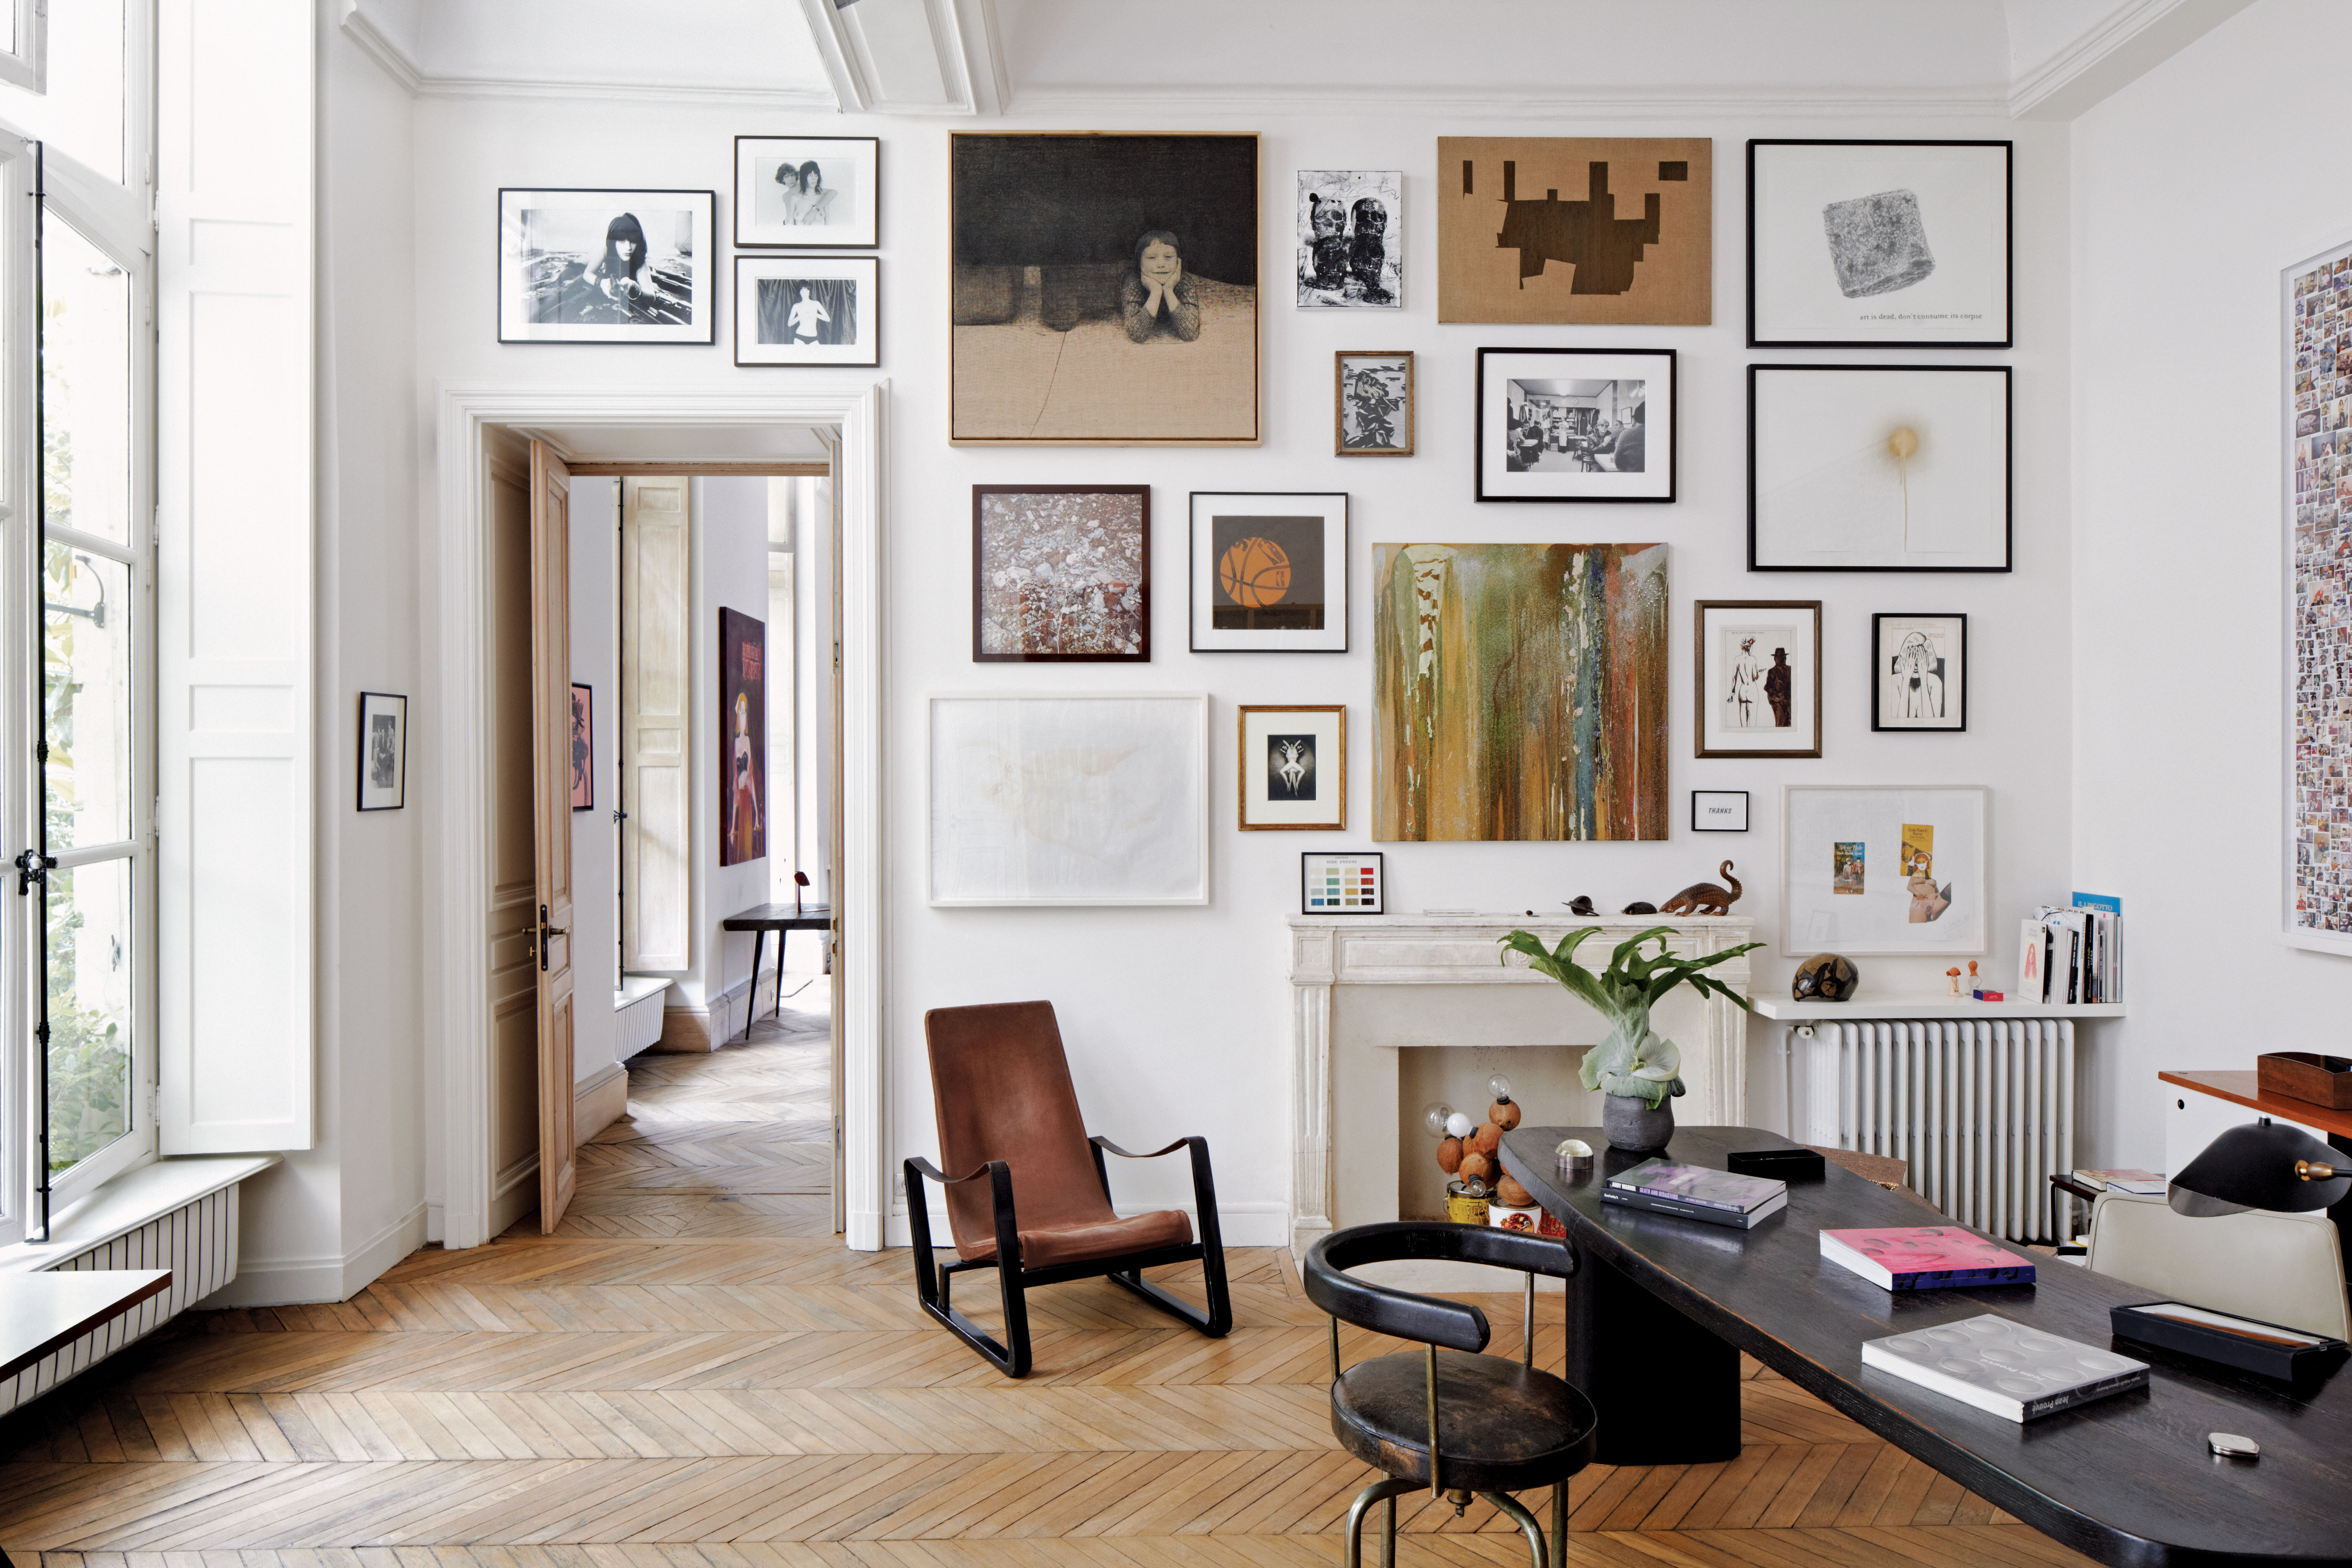 amazing gallery wall in an eclectic modern home office